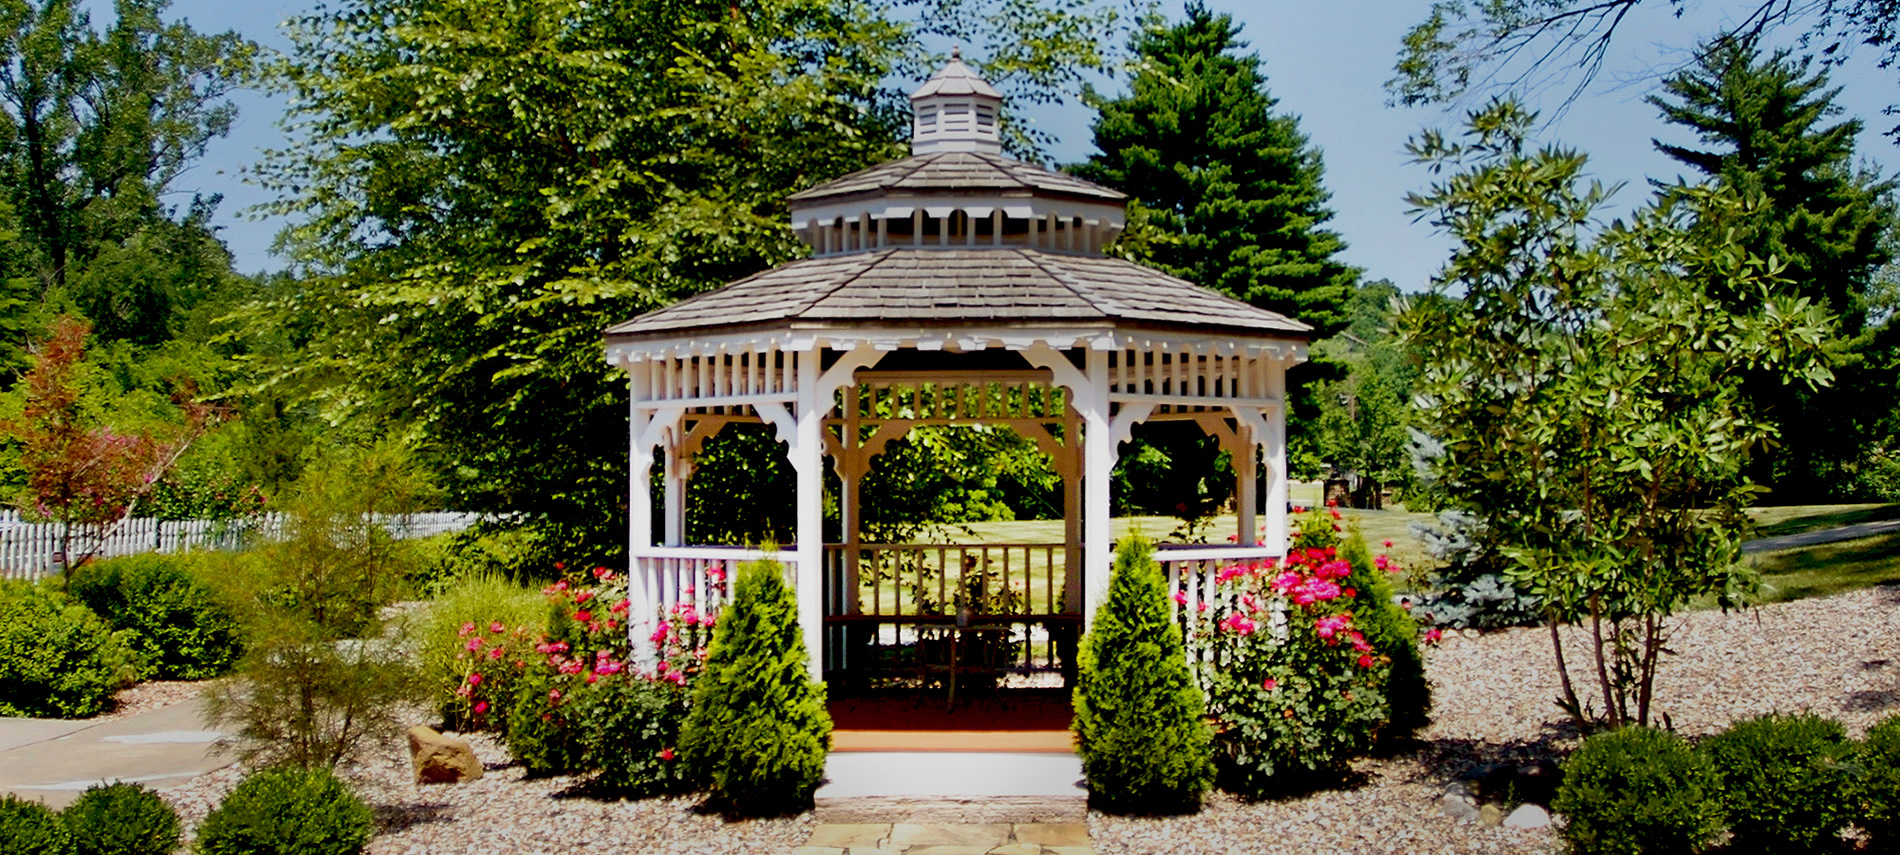 A white wood gazebo surrounded by a rock garden, shrubs and rose bushes